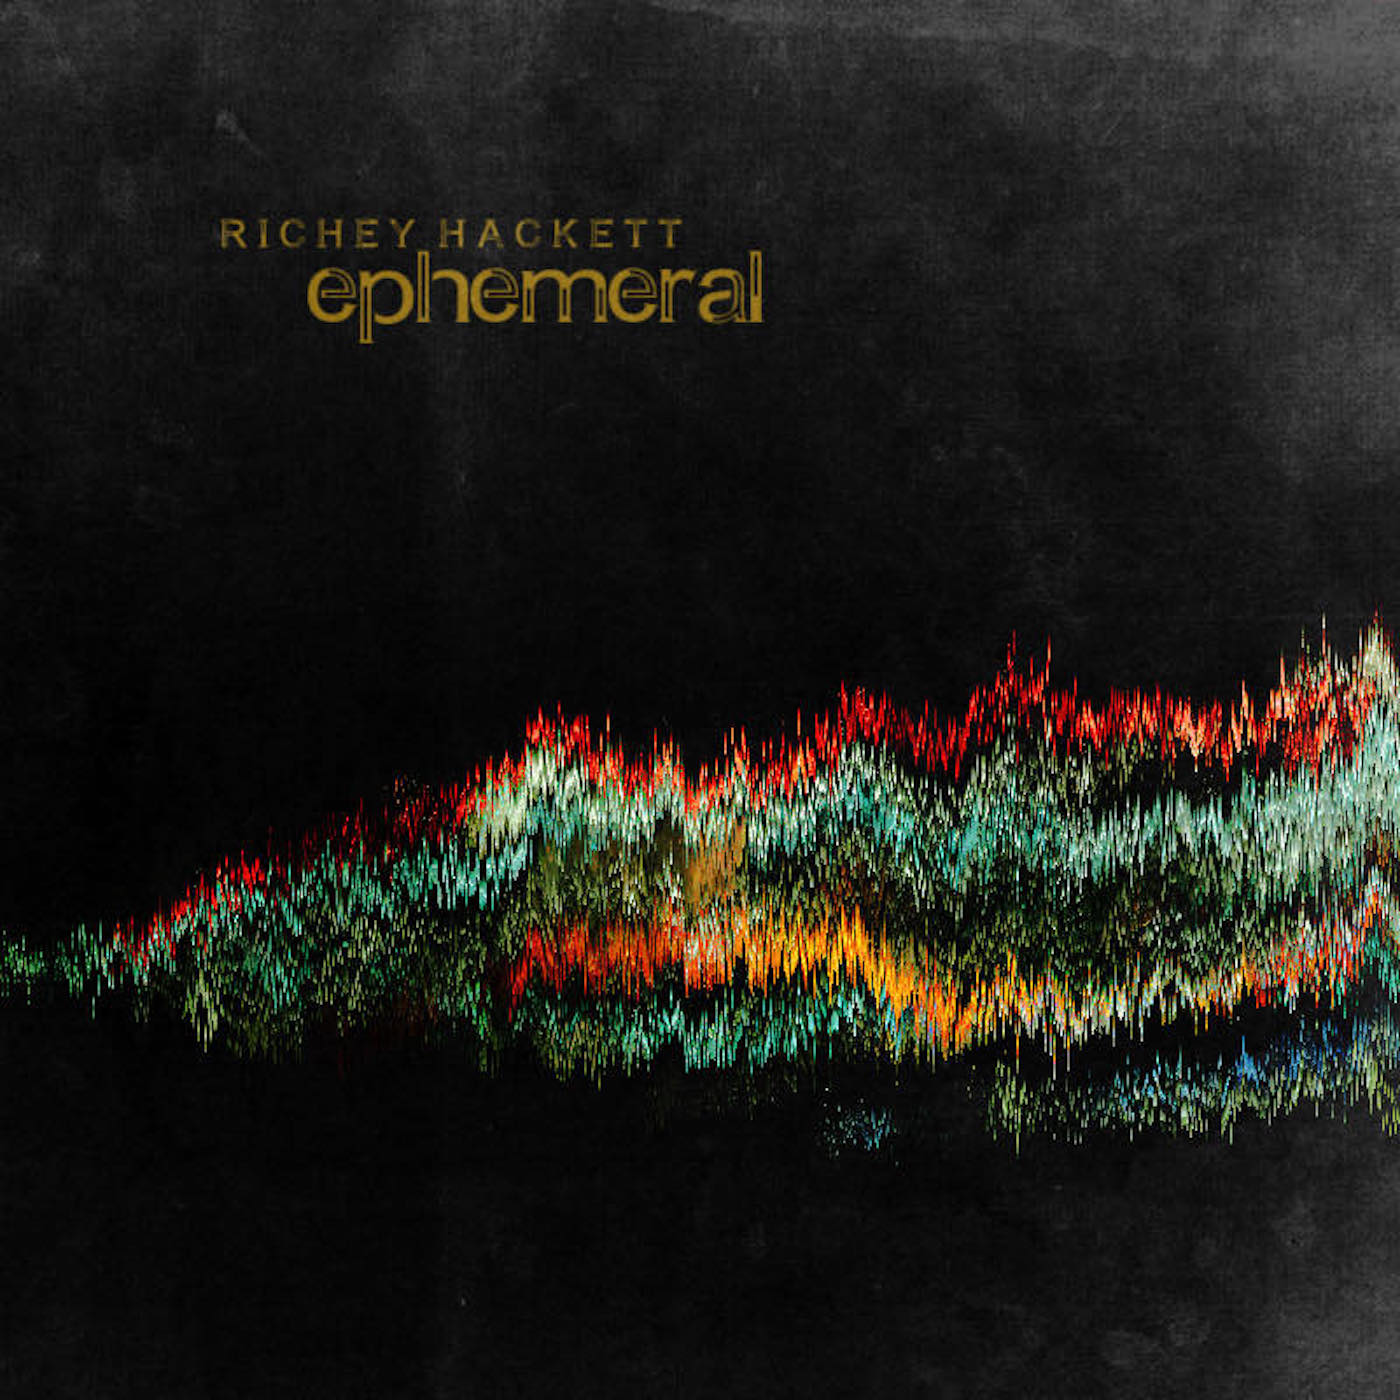 Richey Hackett – Ephemeral